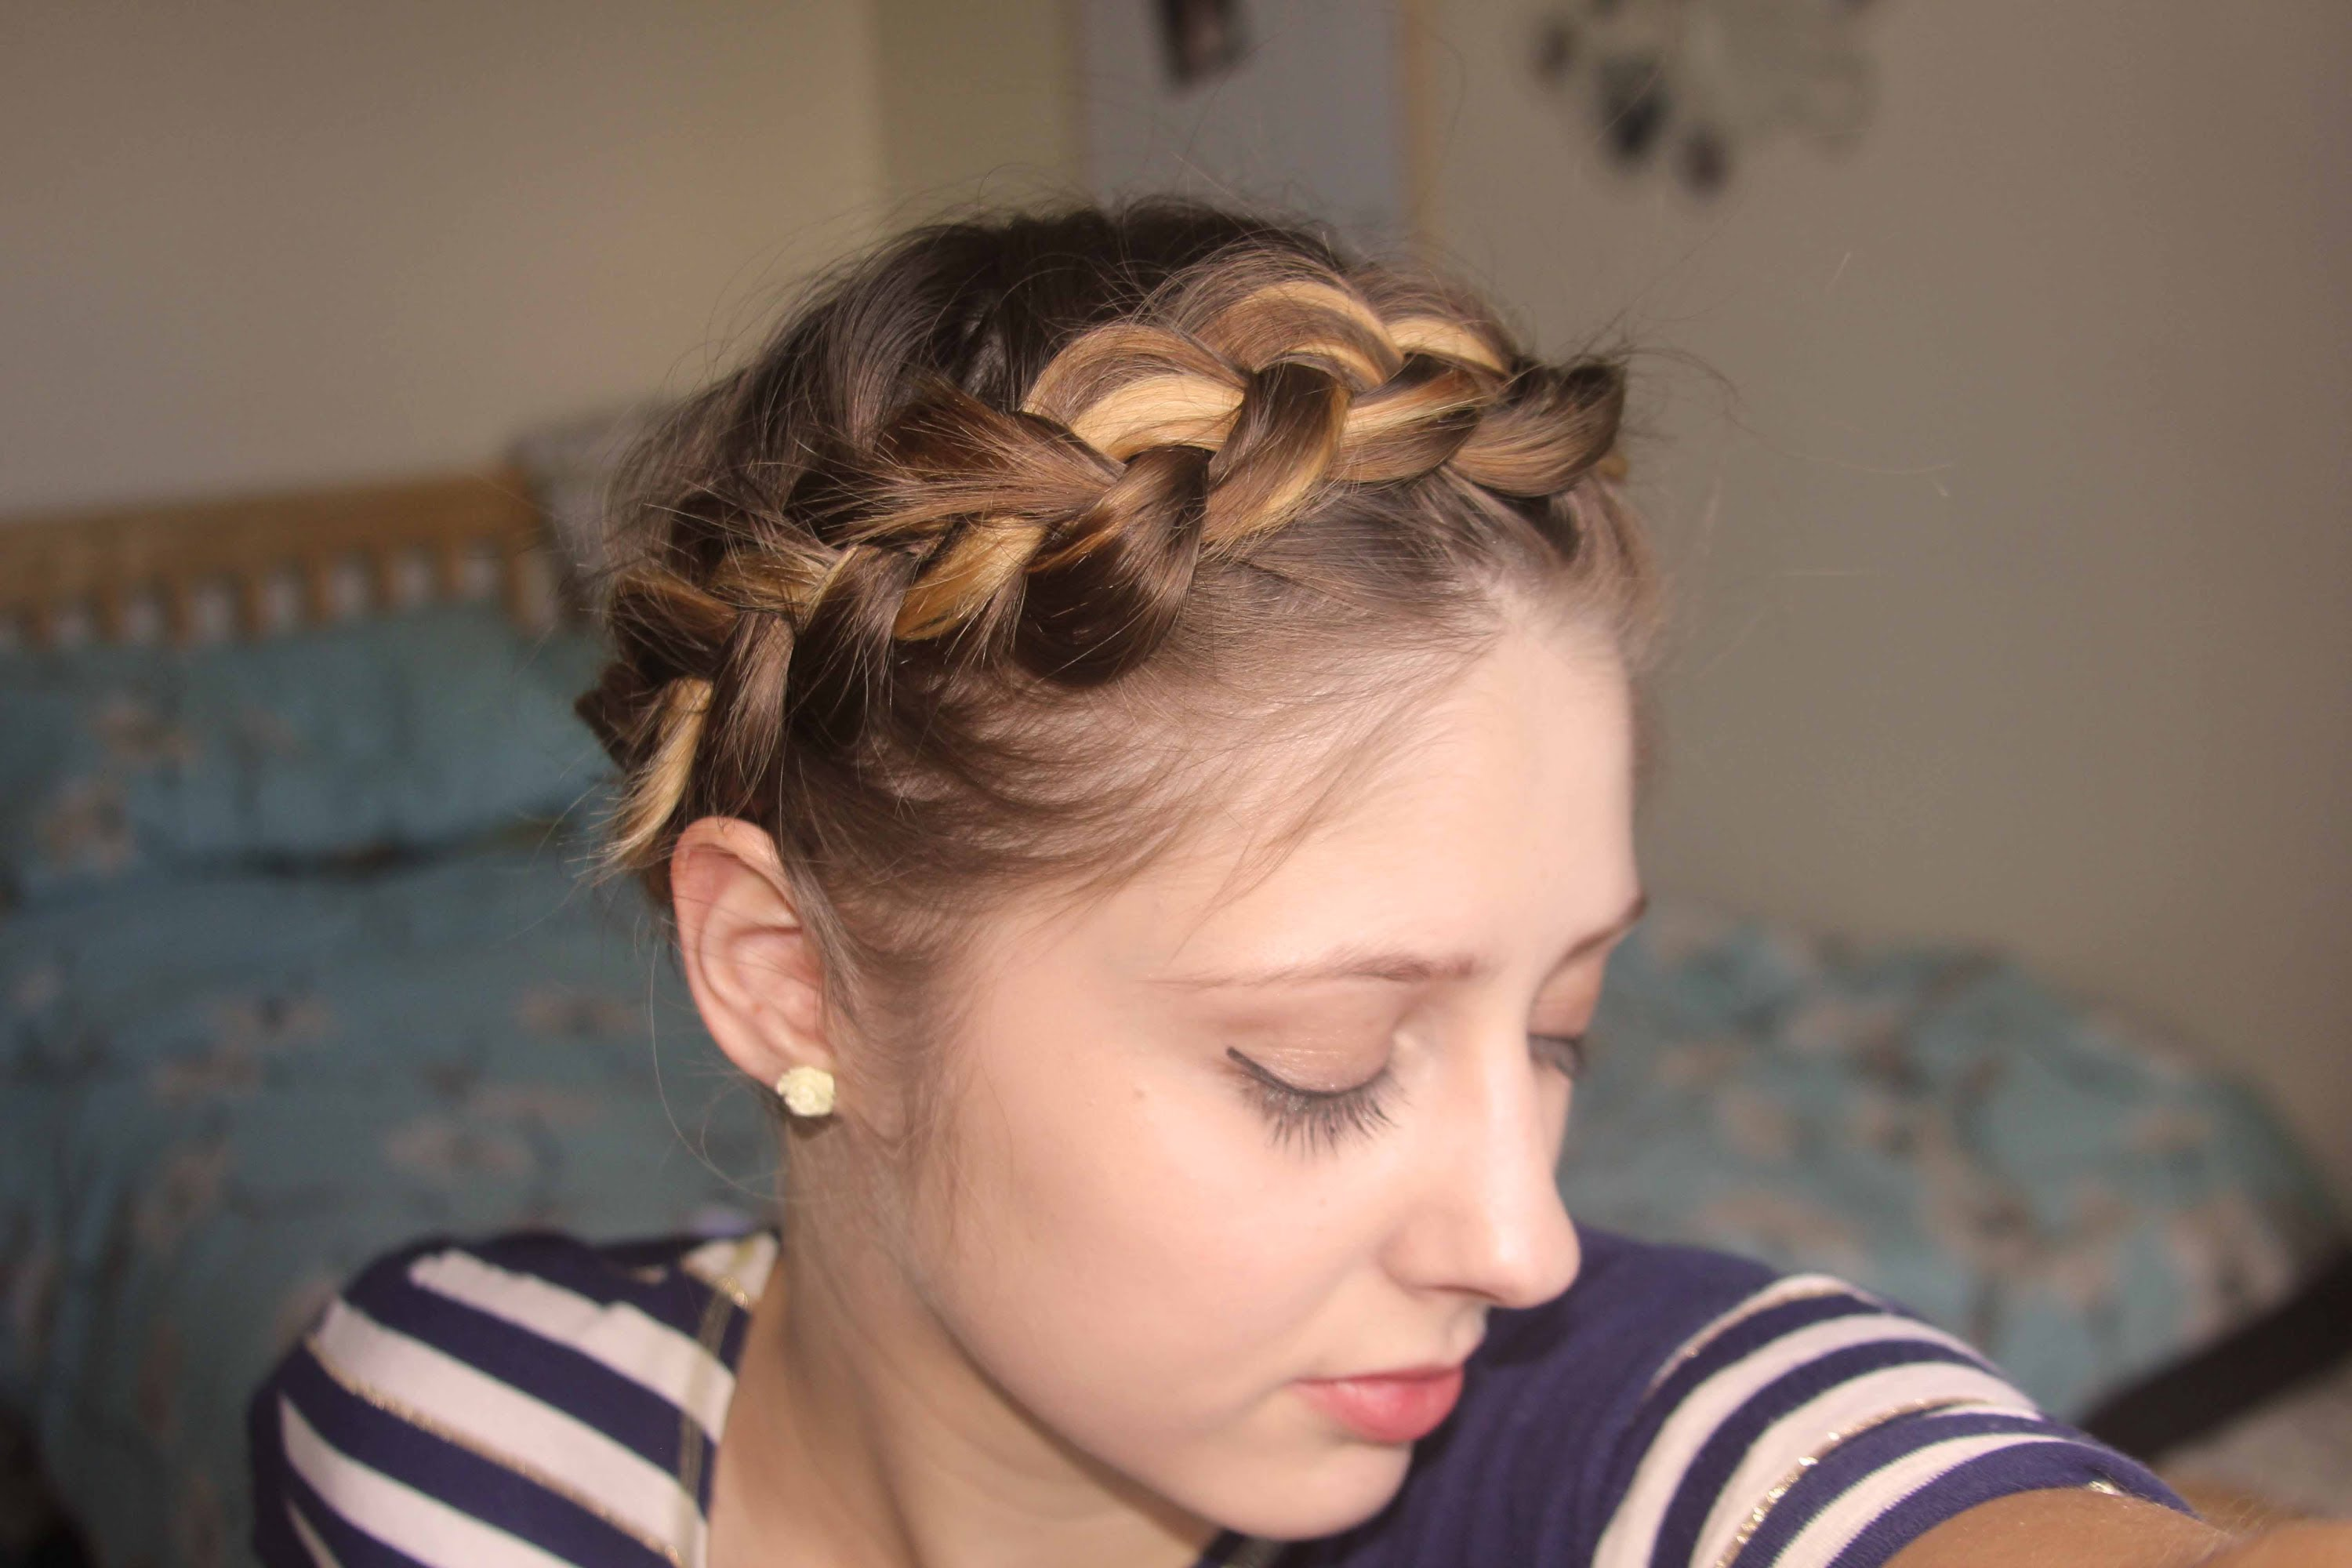 How To Four 4 Strand Braid Hairstyle  YouTube